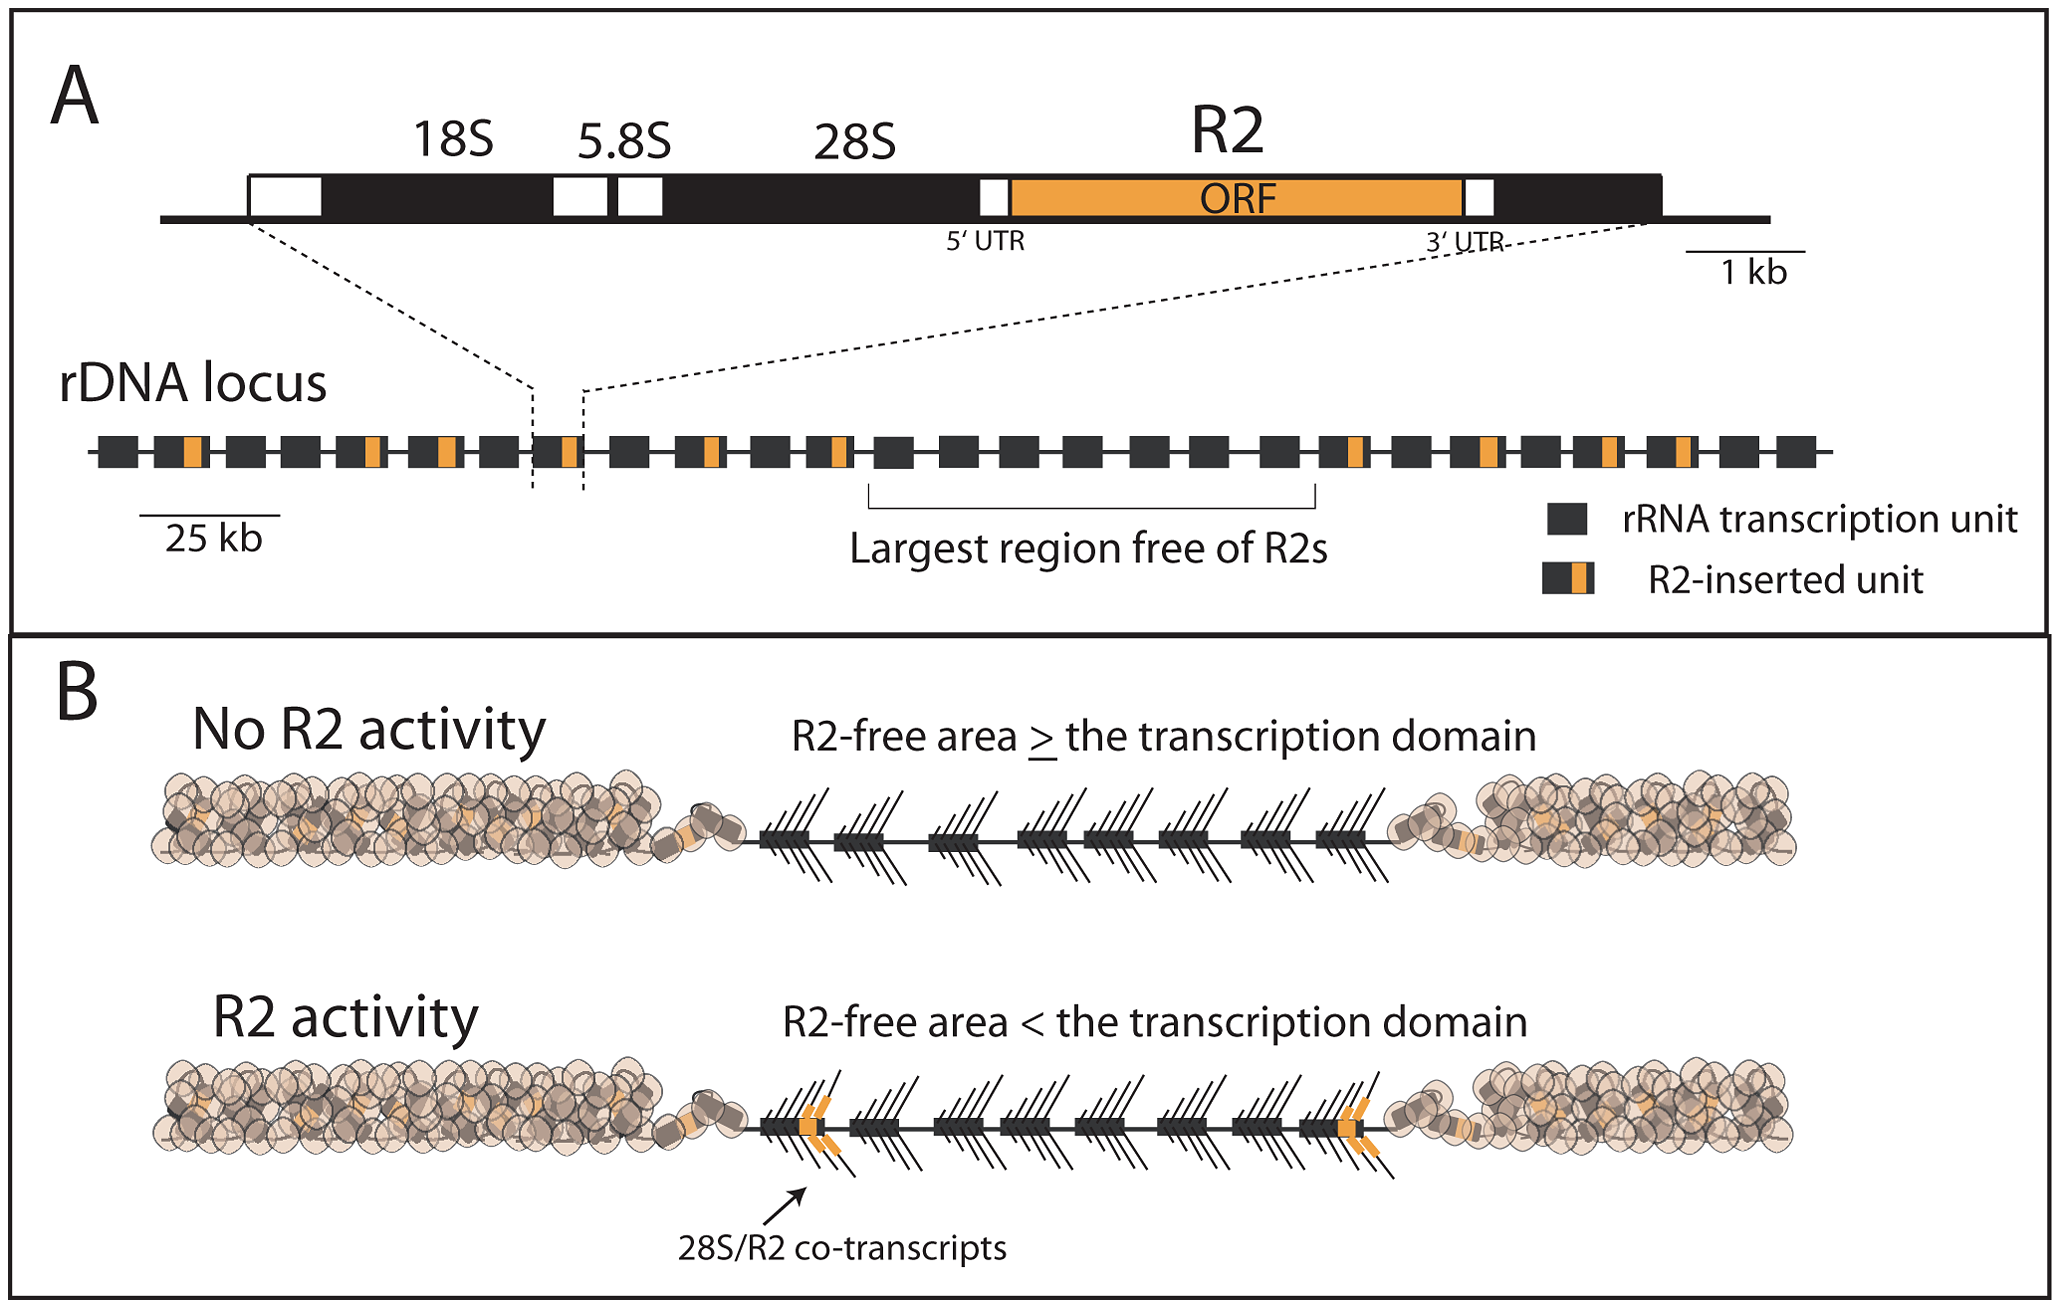 Diagram of the rDNA locus and how the distribution of R2 gives rise to R2-active and R2-inactive individuals.